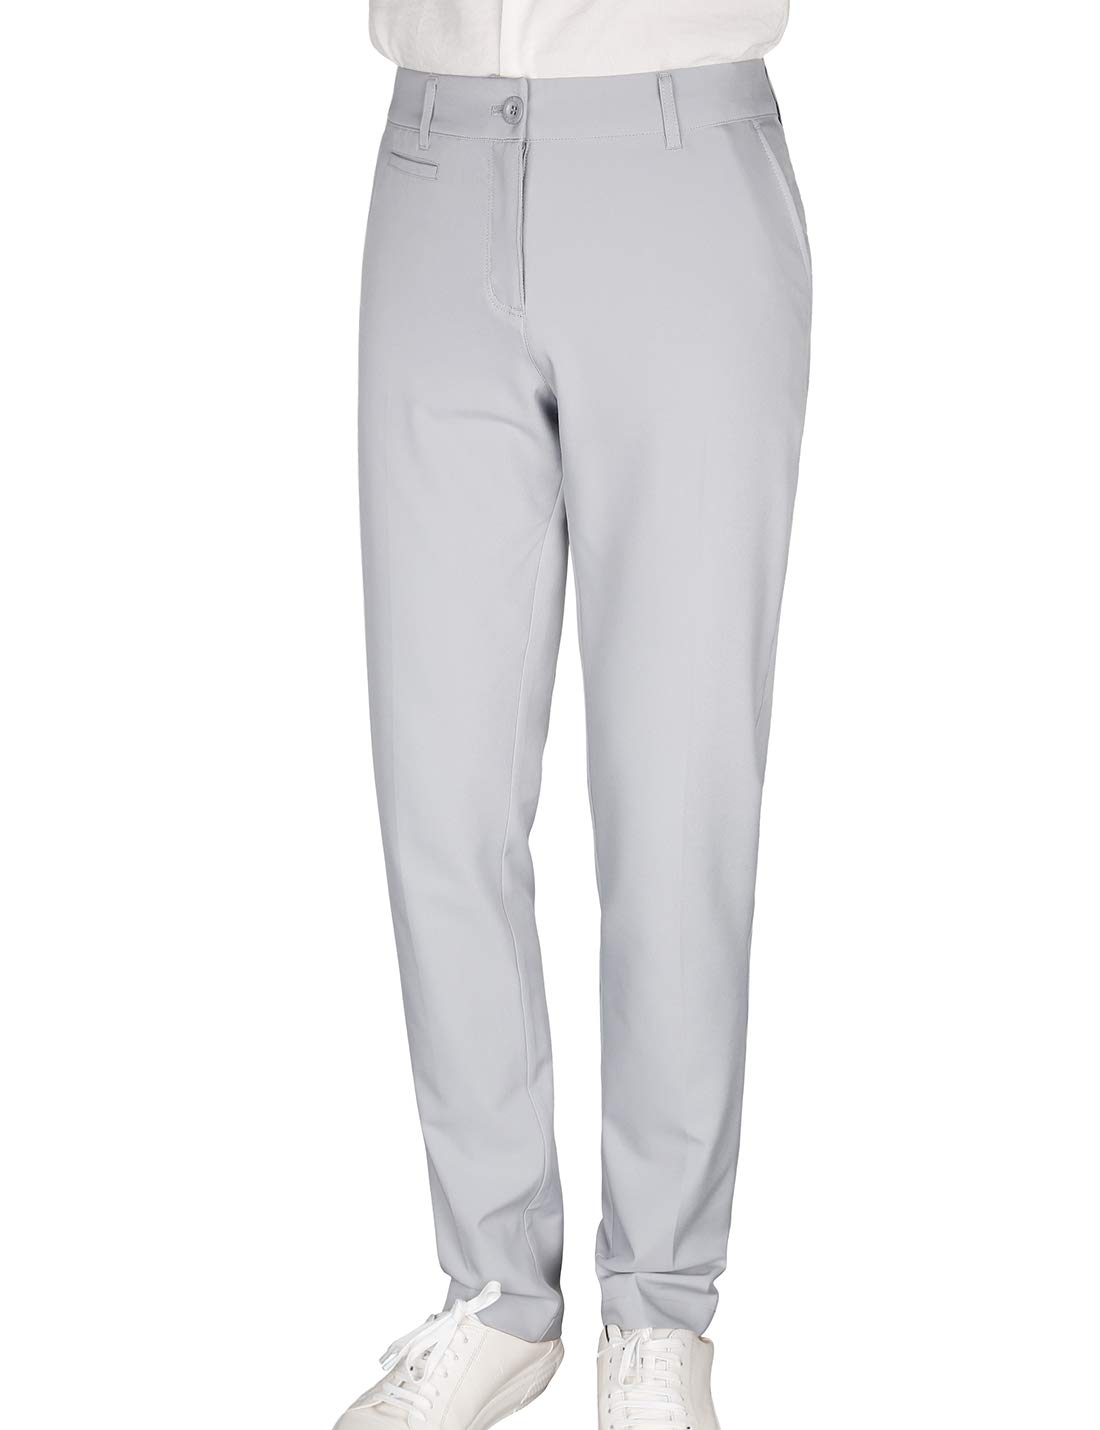 Women's Golf Pants Stretch Straight Lightweight Breathable Twill Work Chino Ladies Pants Size 8 Grey by Bakery